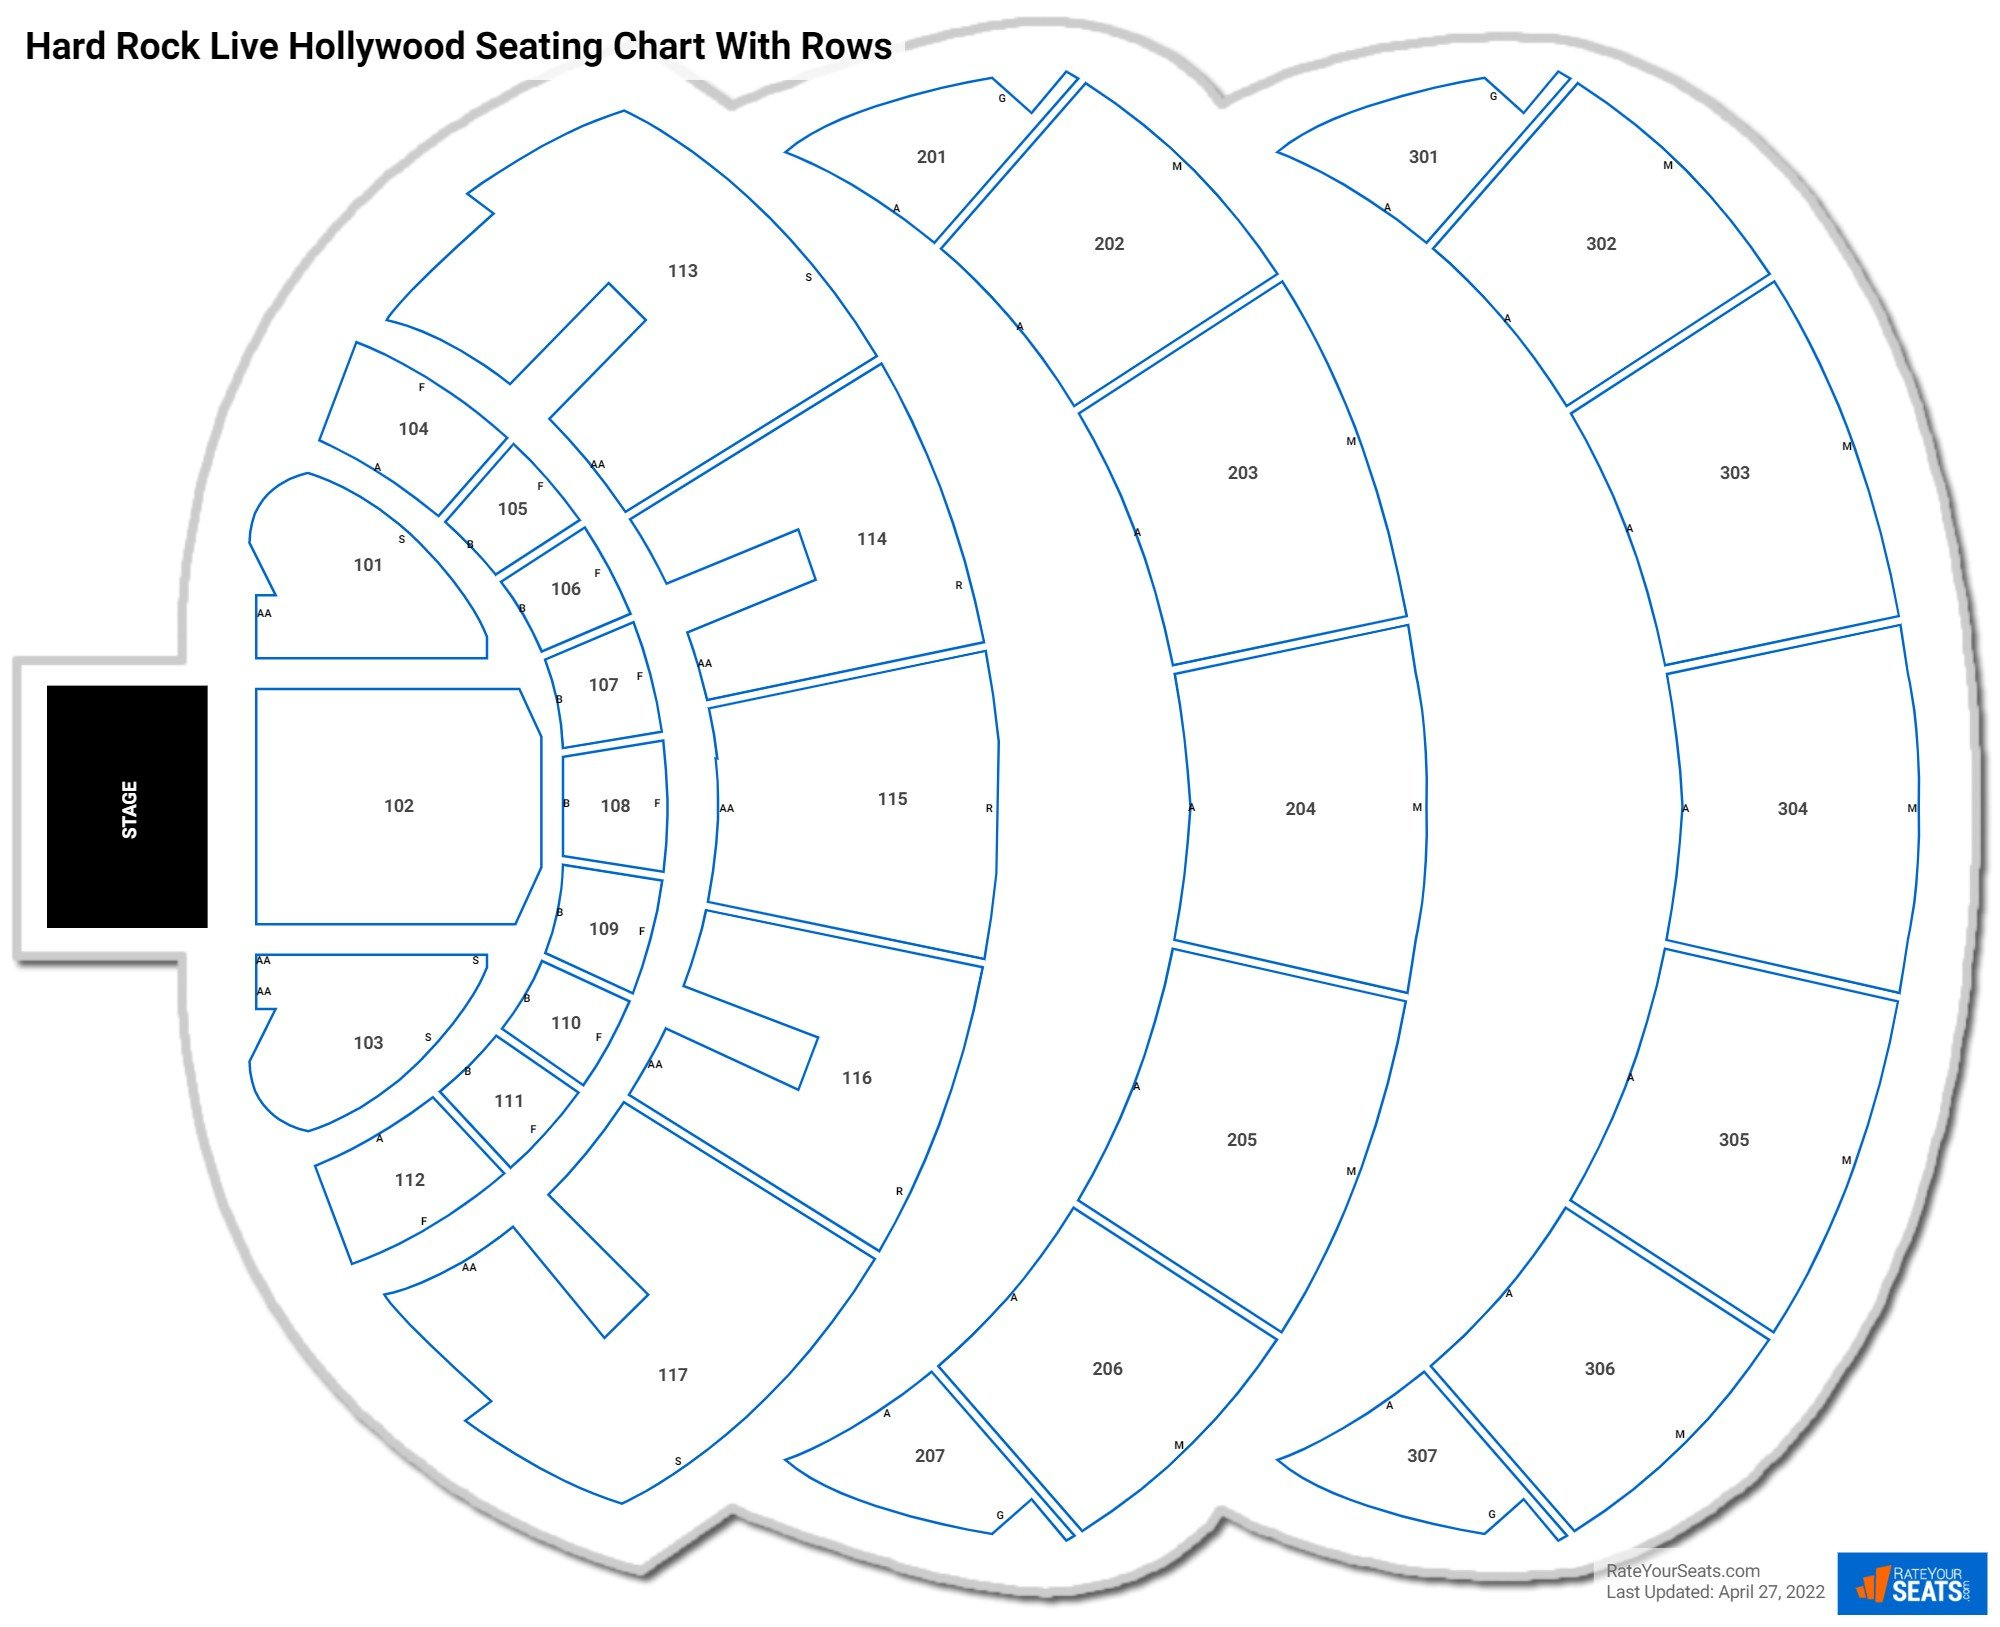 Hard Rock Live Hollywood seating chart with rows